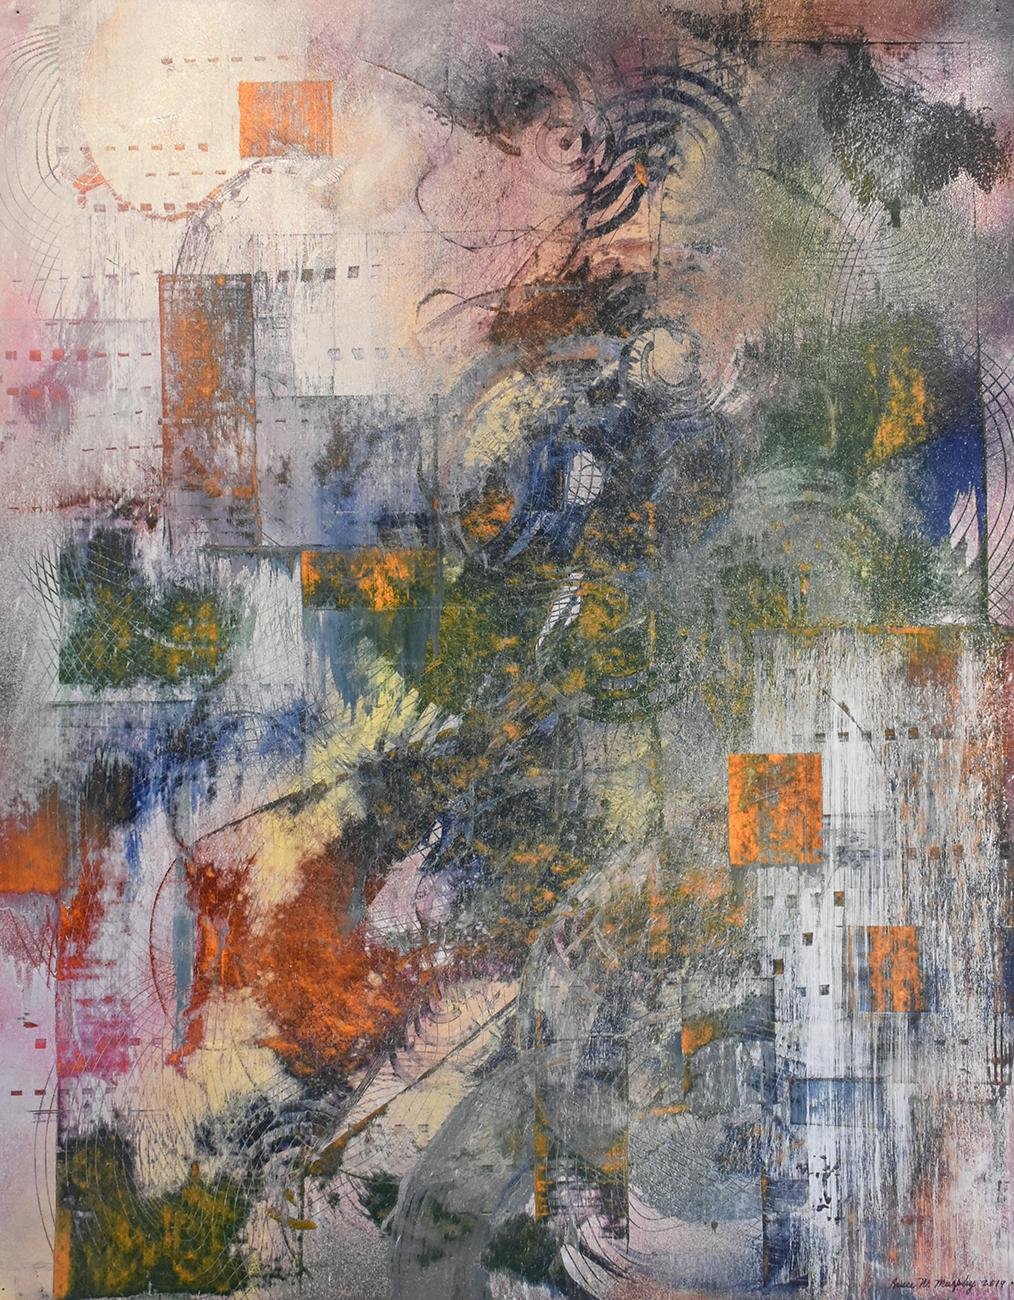 Inside the Canine Mind: Abstract Painting in the Style of Gerhard Richter